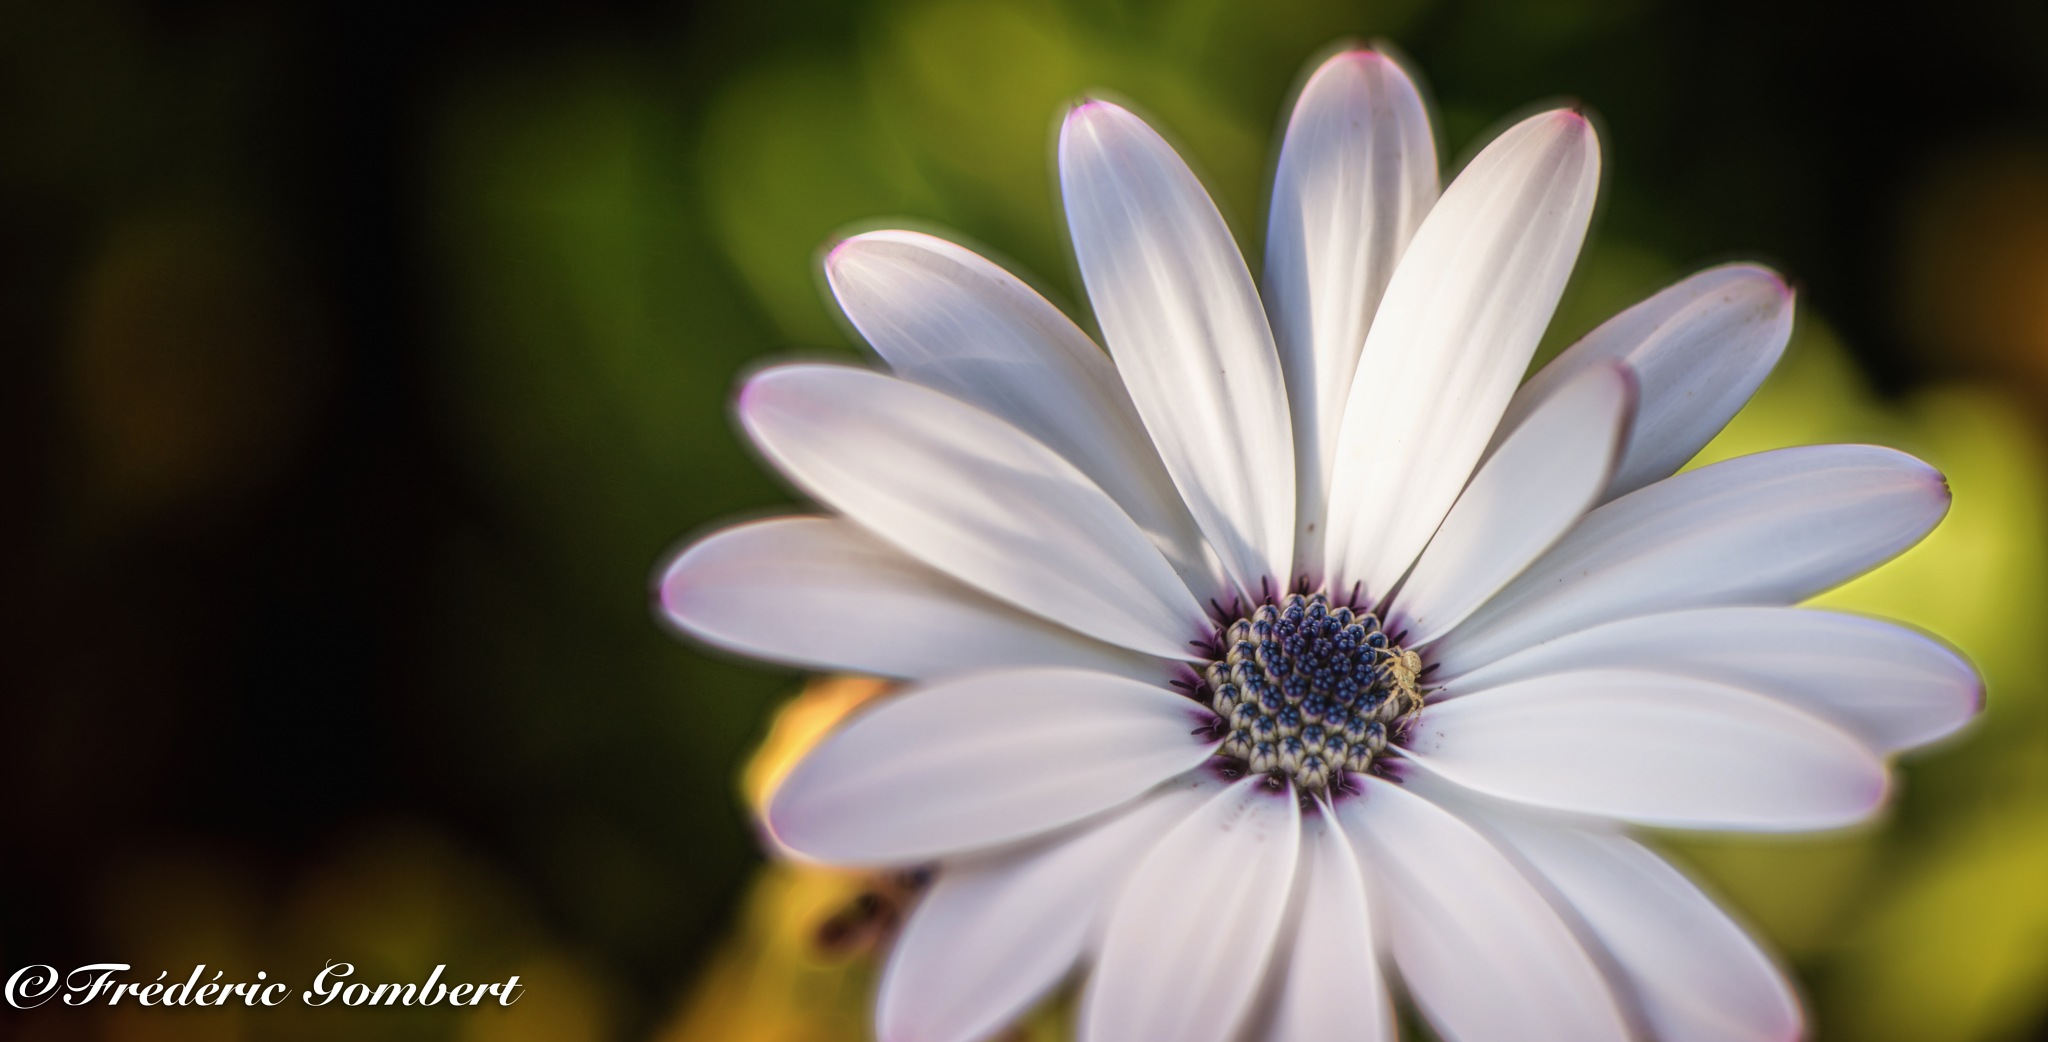 going to the light by Frederic Gombert